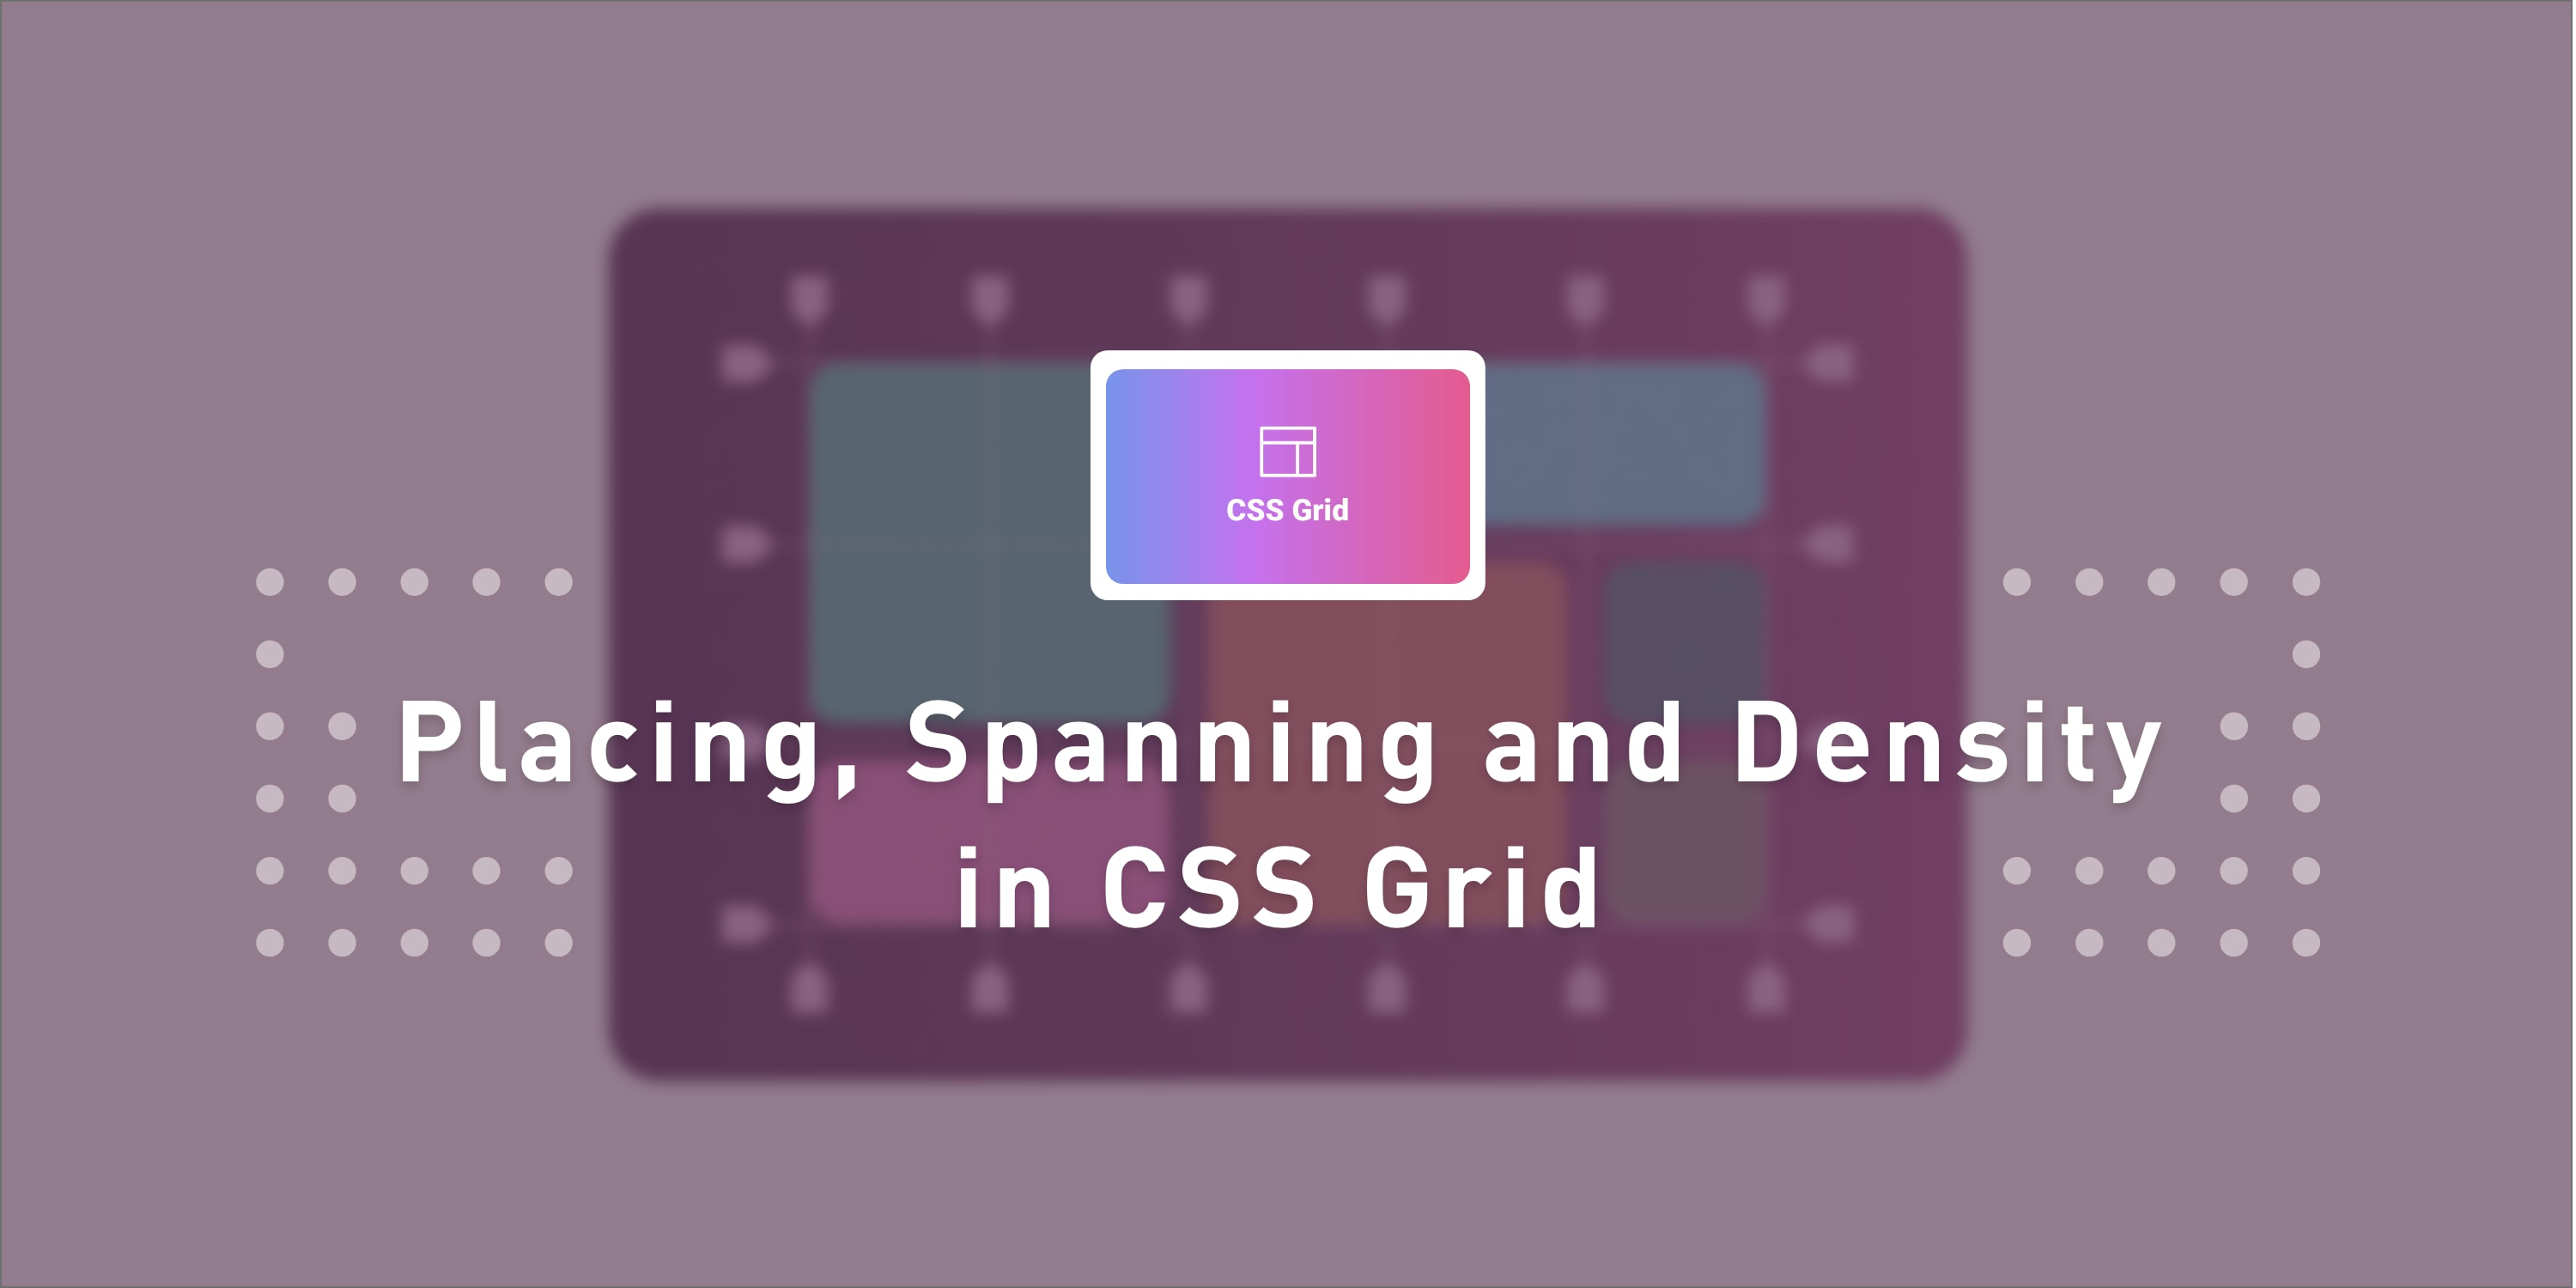 Placing, Spanning and Density in CSS Grid ― Scotch io